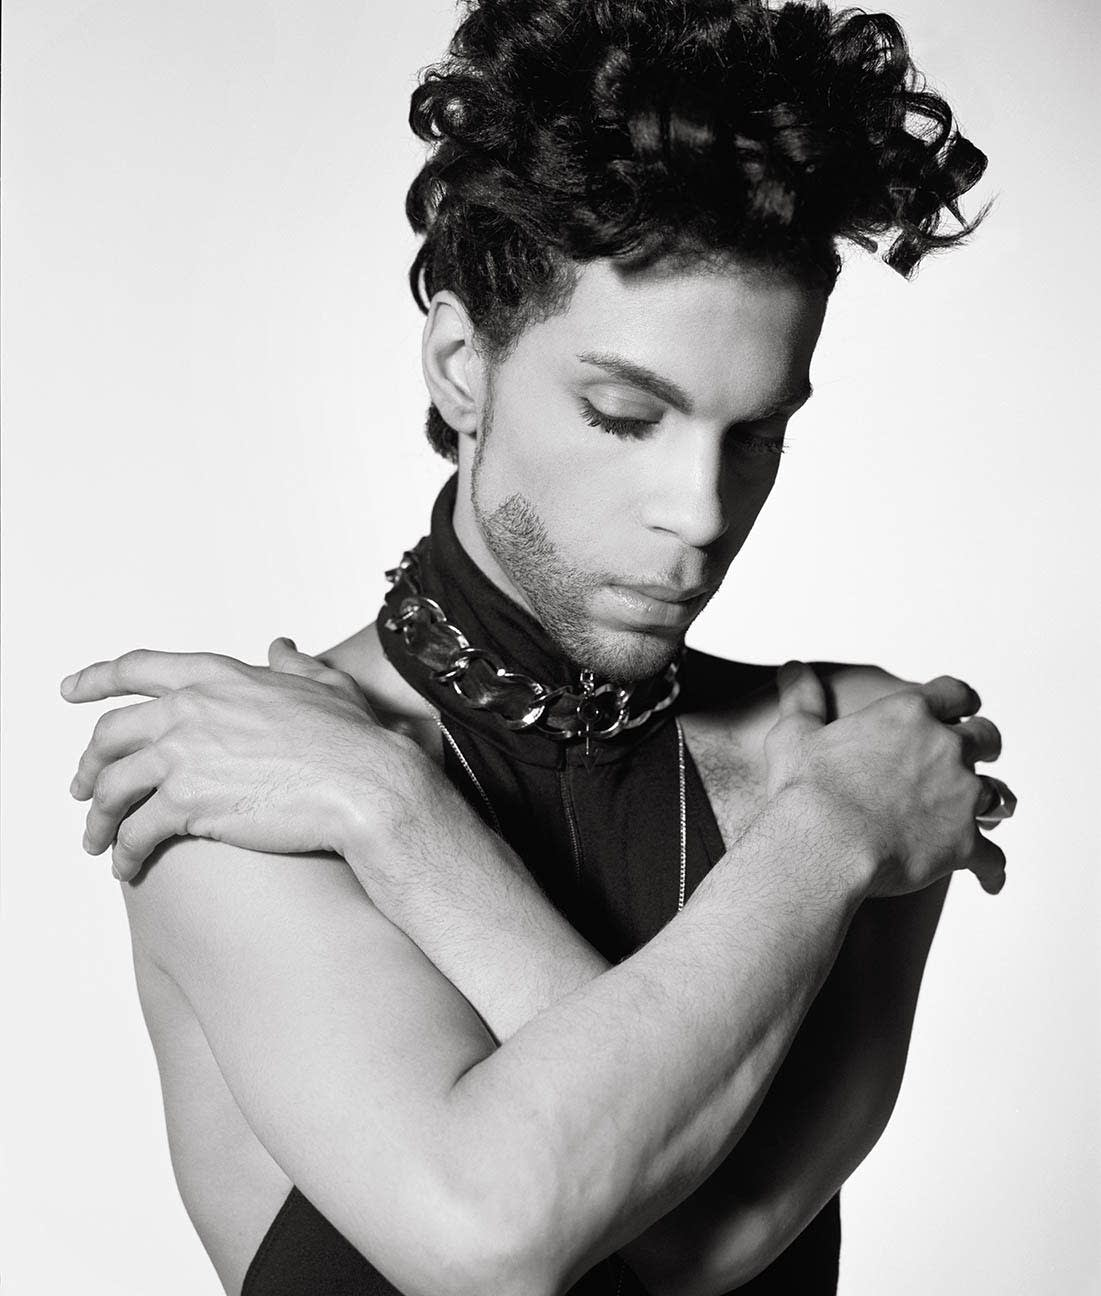 Prince on Prince the best quotes from the man himself